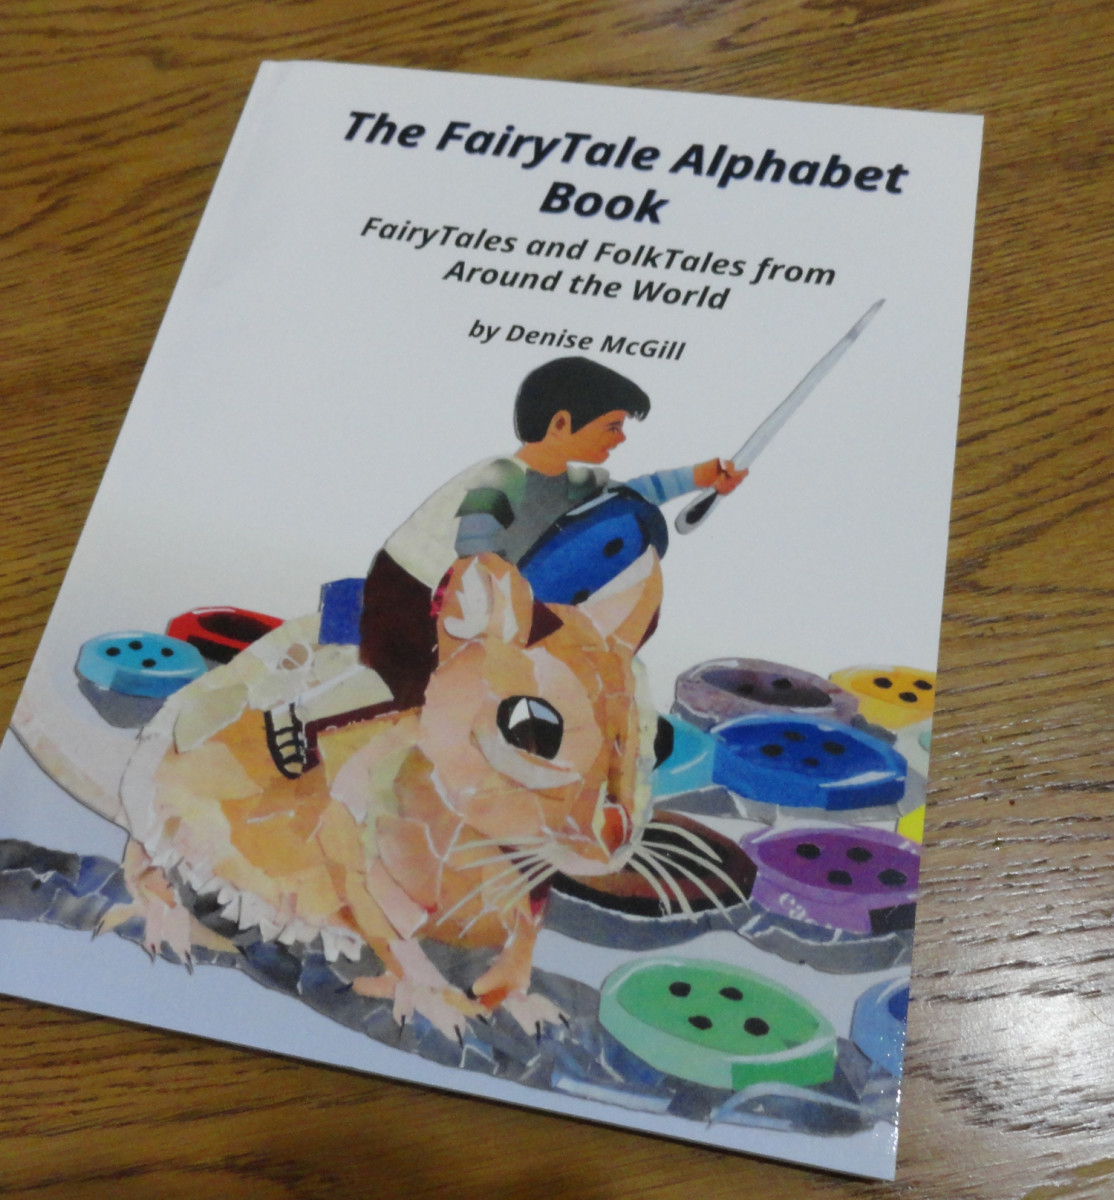 My published FairyTale Alphabet Book cover.